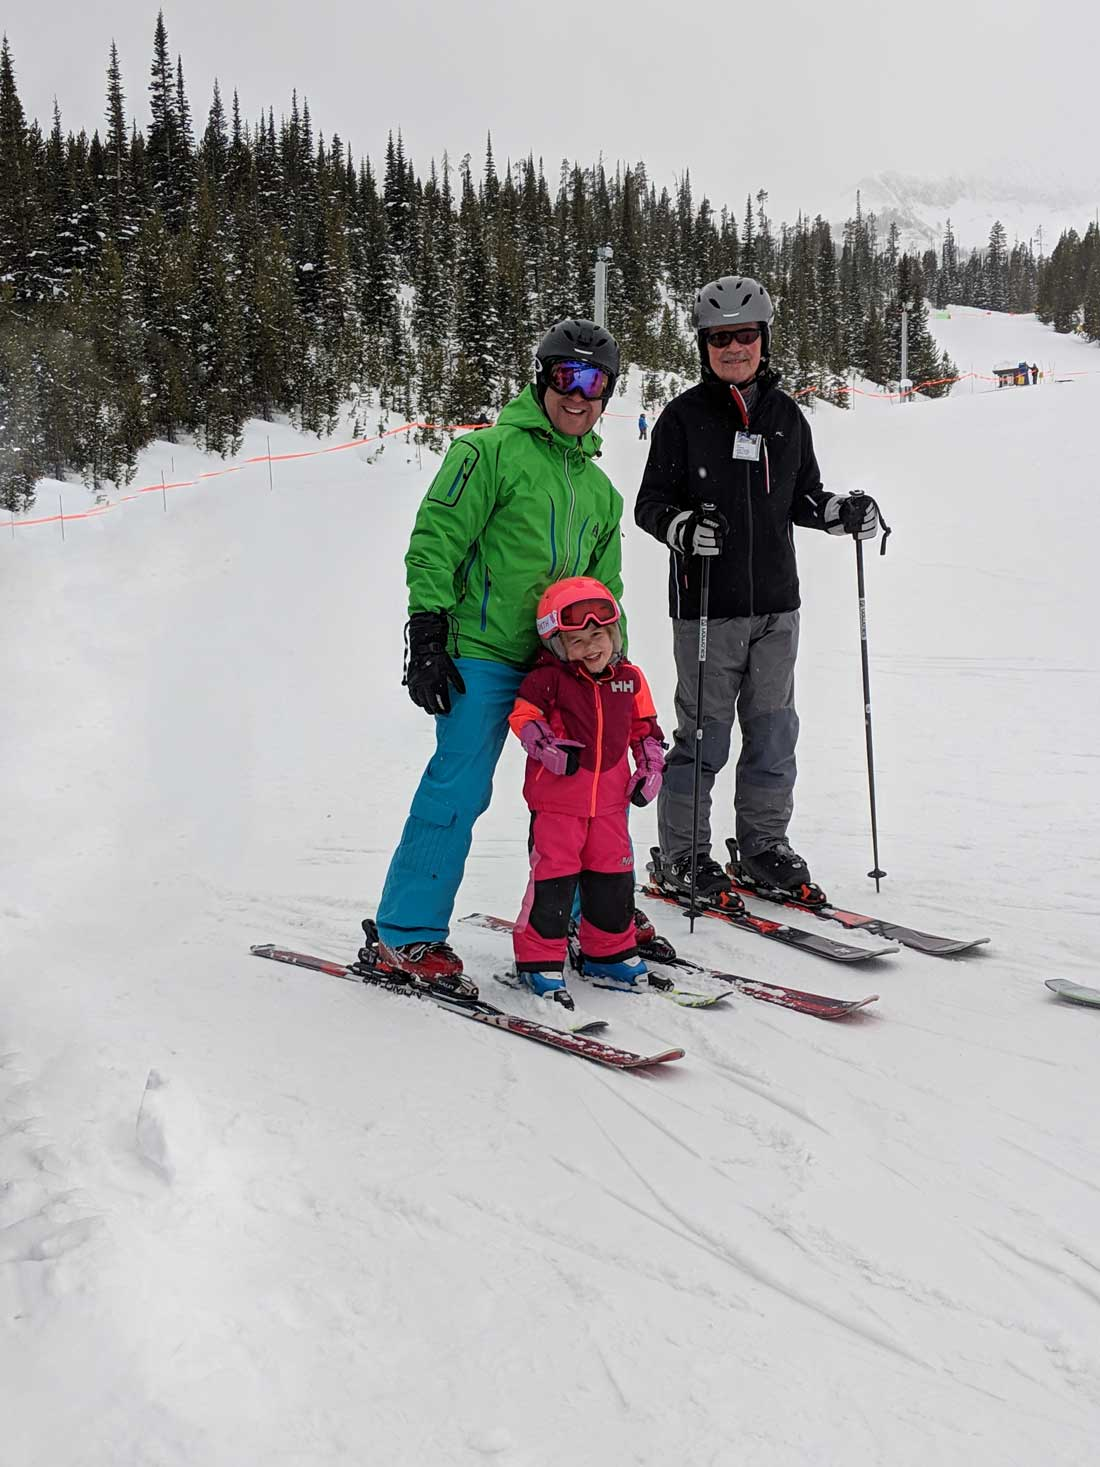 3 year old skiing with dad and grandpa